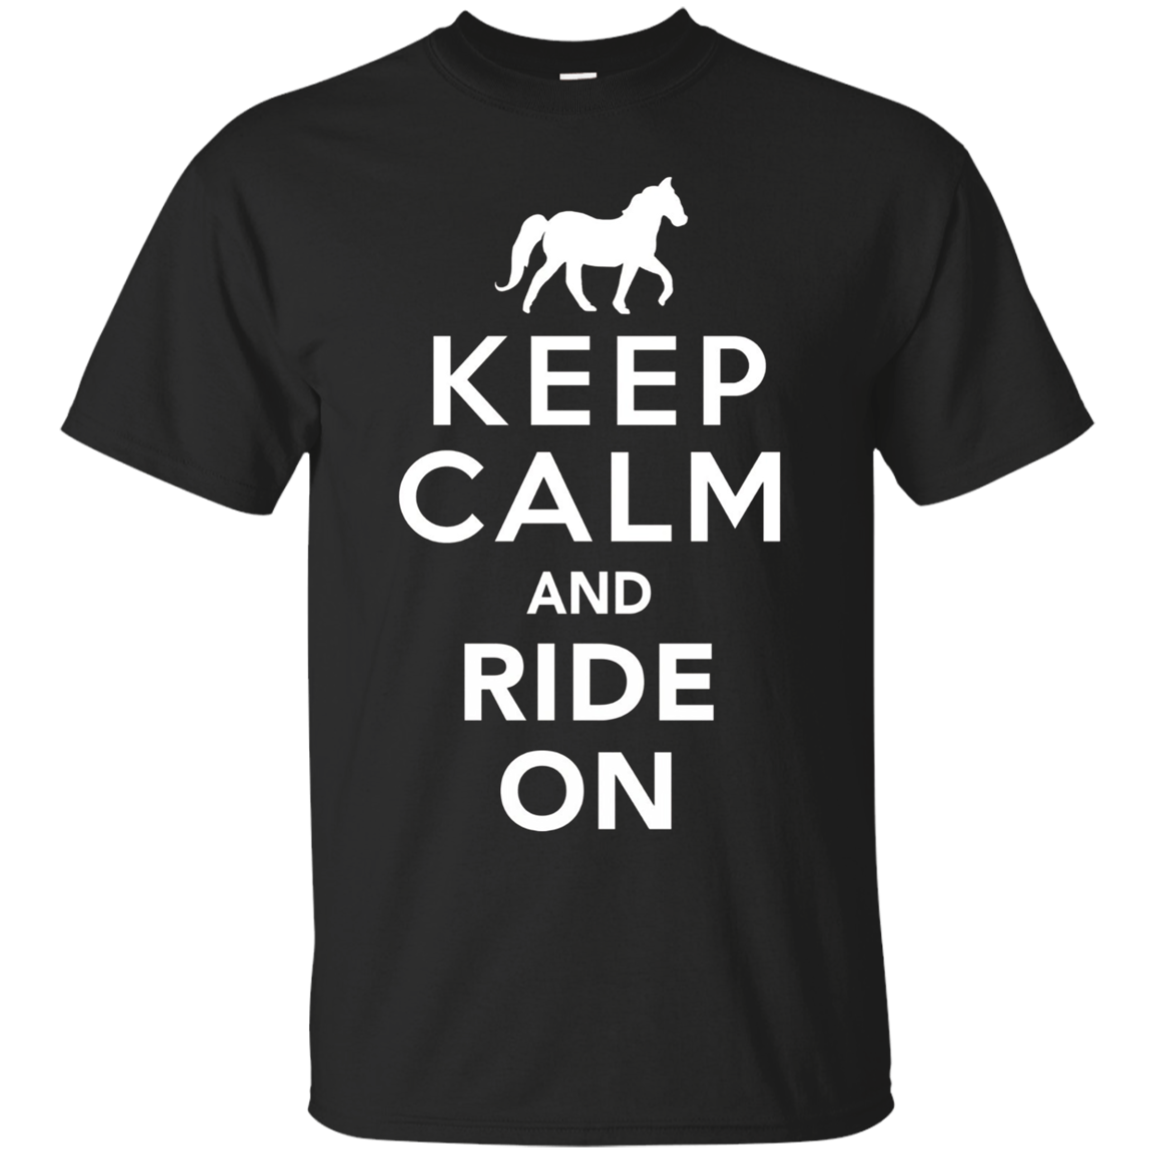 Keep Calm and Ride On T-Shirt: Horse-back Riding Gift